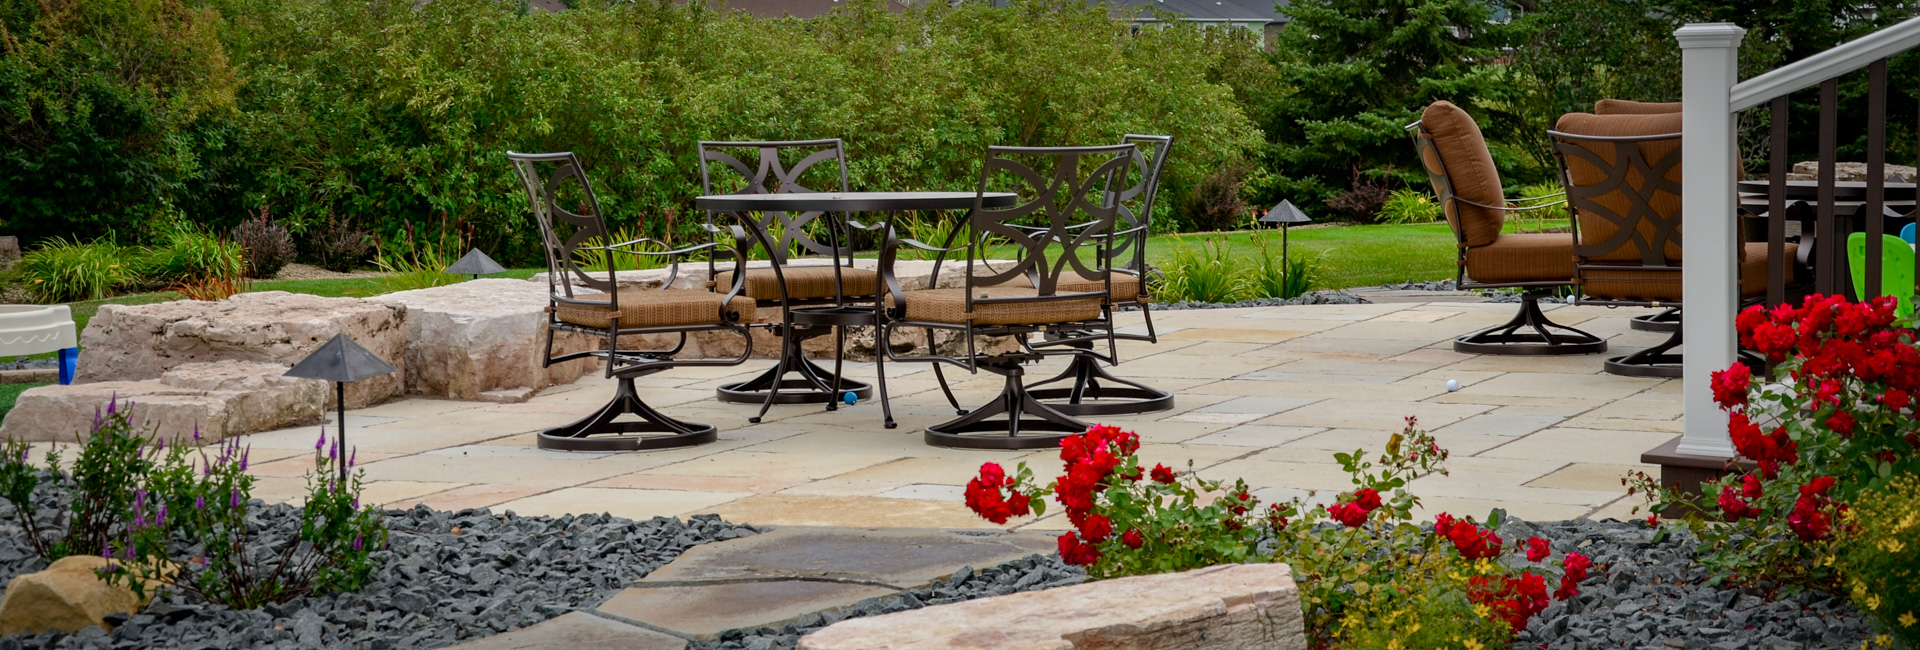 Natural Stone Patio Landscaping